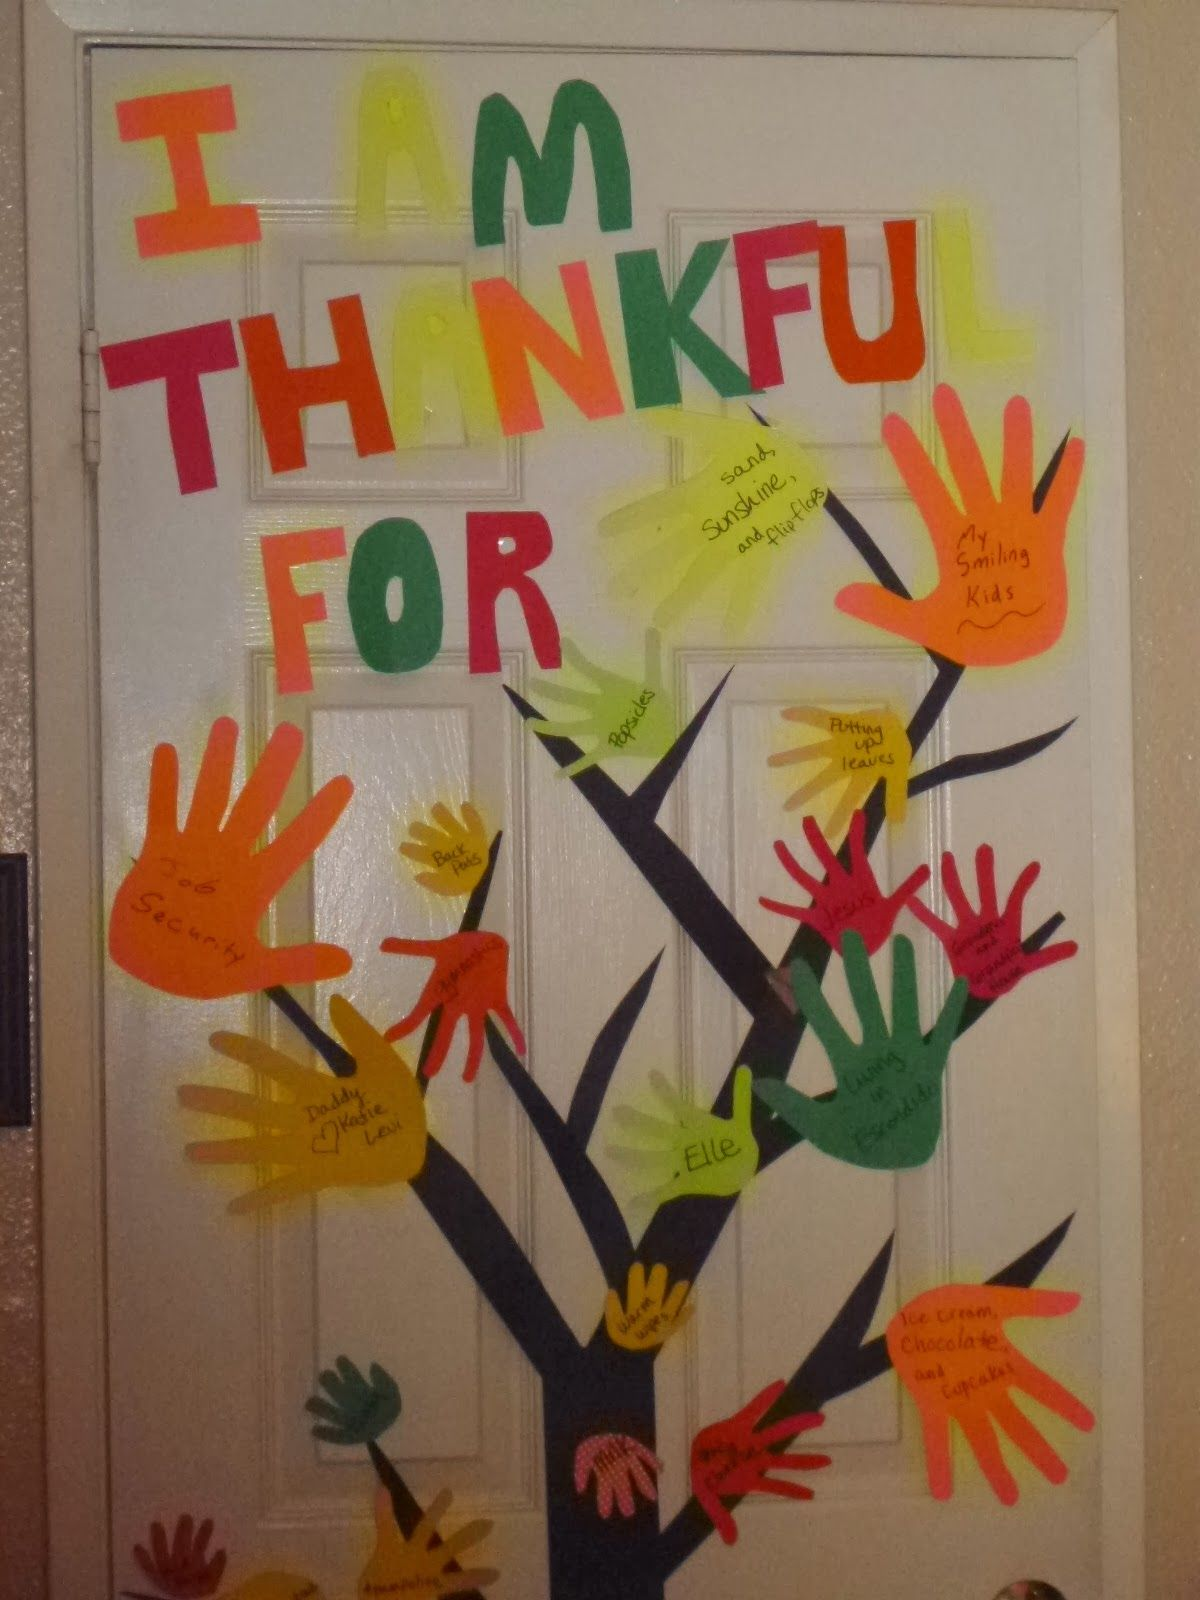 38+ Craft ideas for toddlers for thanksgiving ideas in 2021